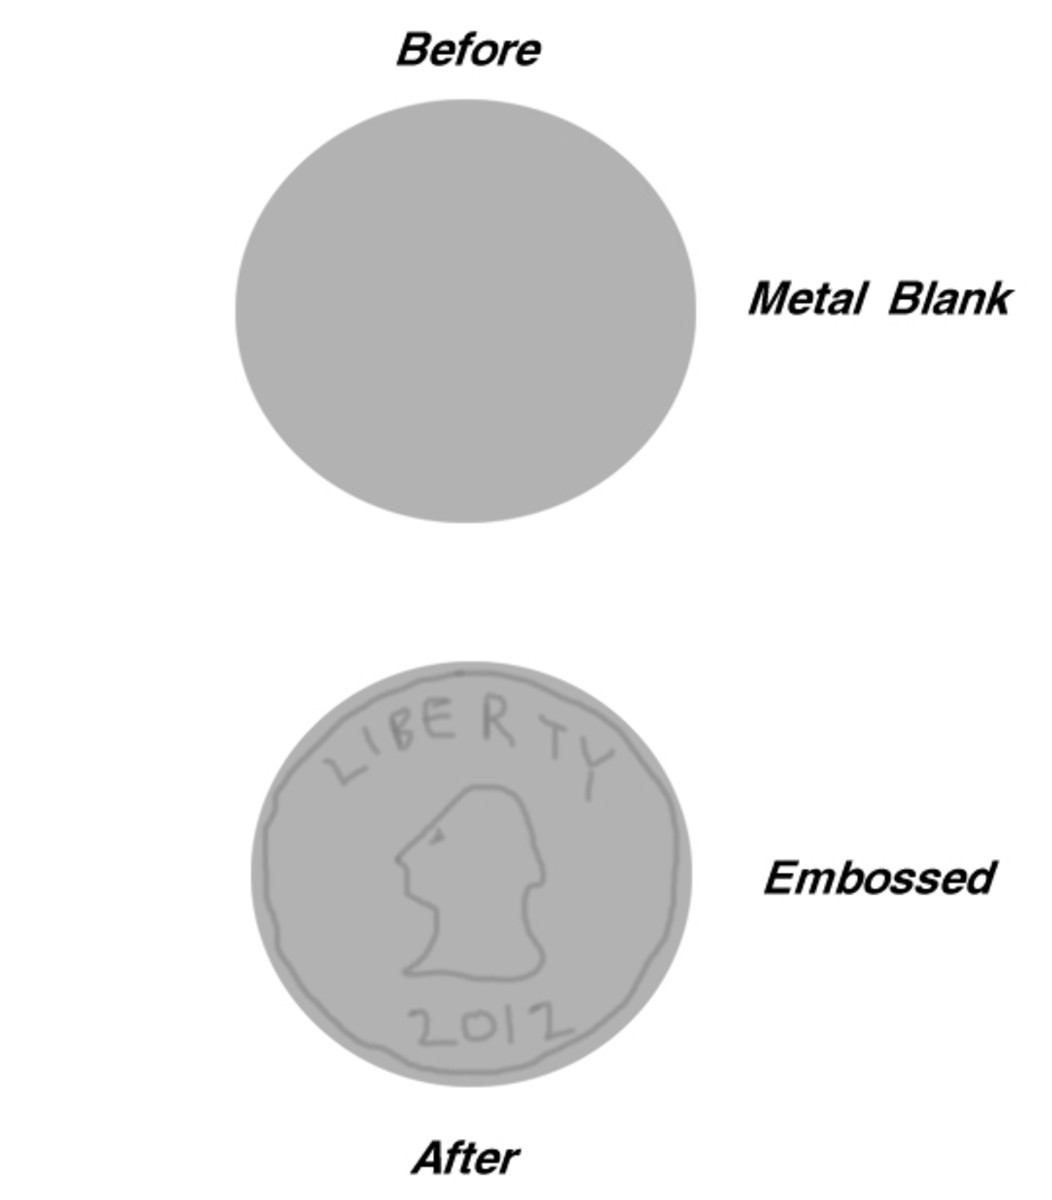 stamping-dies-a-basic-explanation-of-metal-stamping